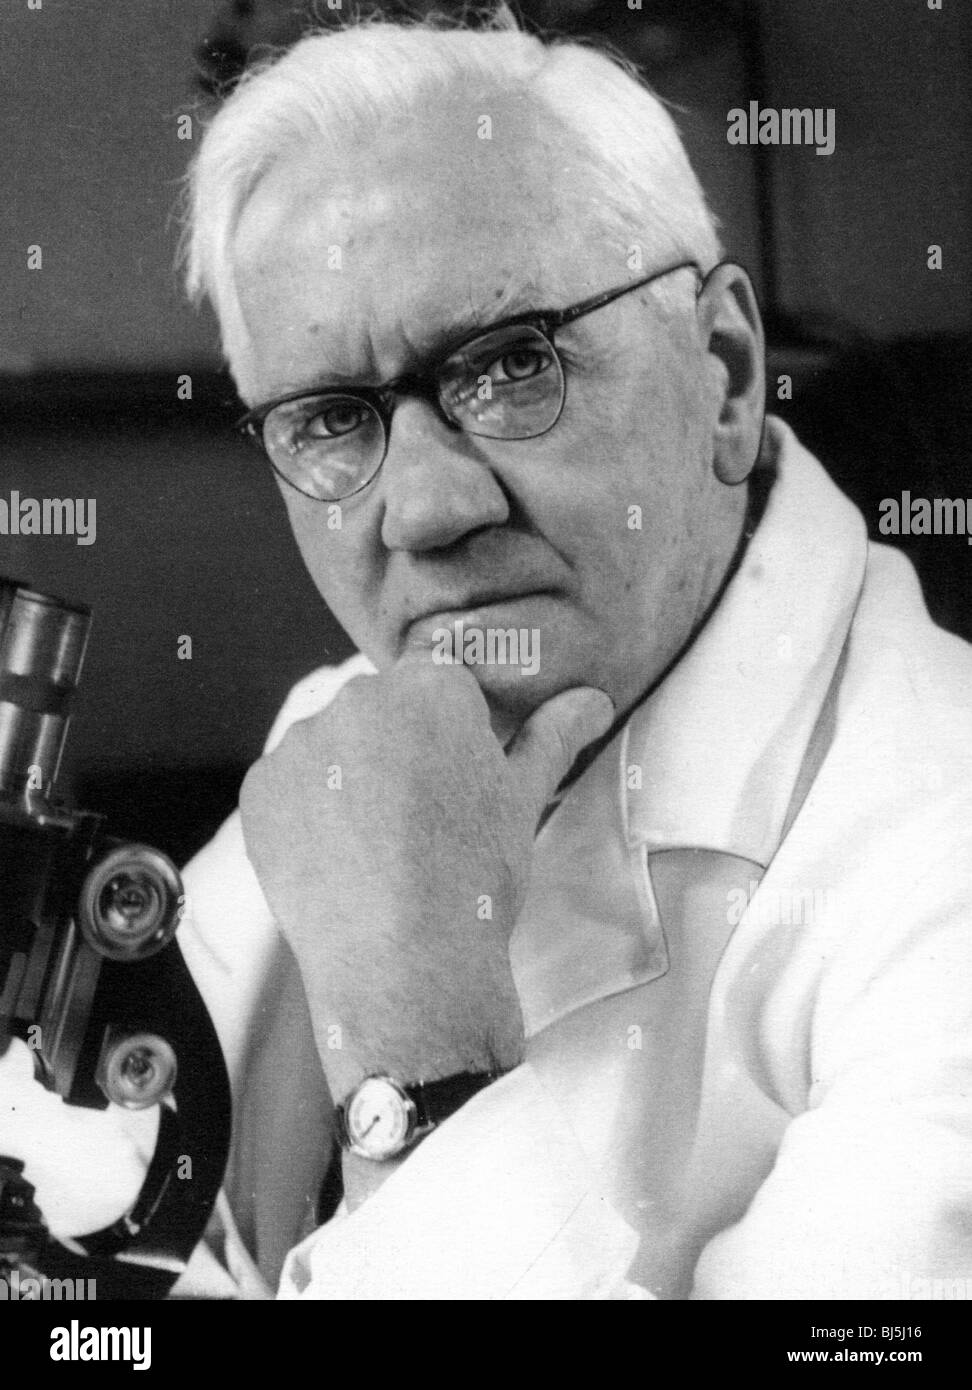 SIR ALEXANDER FLEMING - Scottish bacteriologist and discovere of penicillin  (1881-1955) - Stock Image